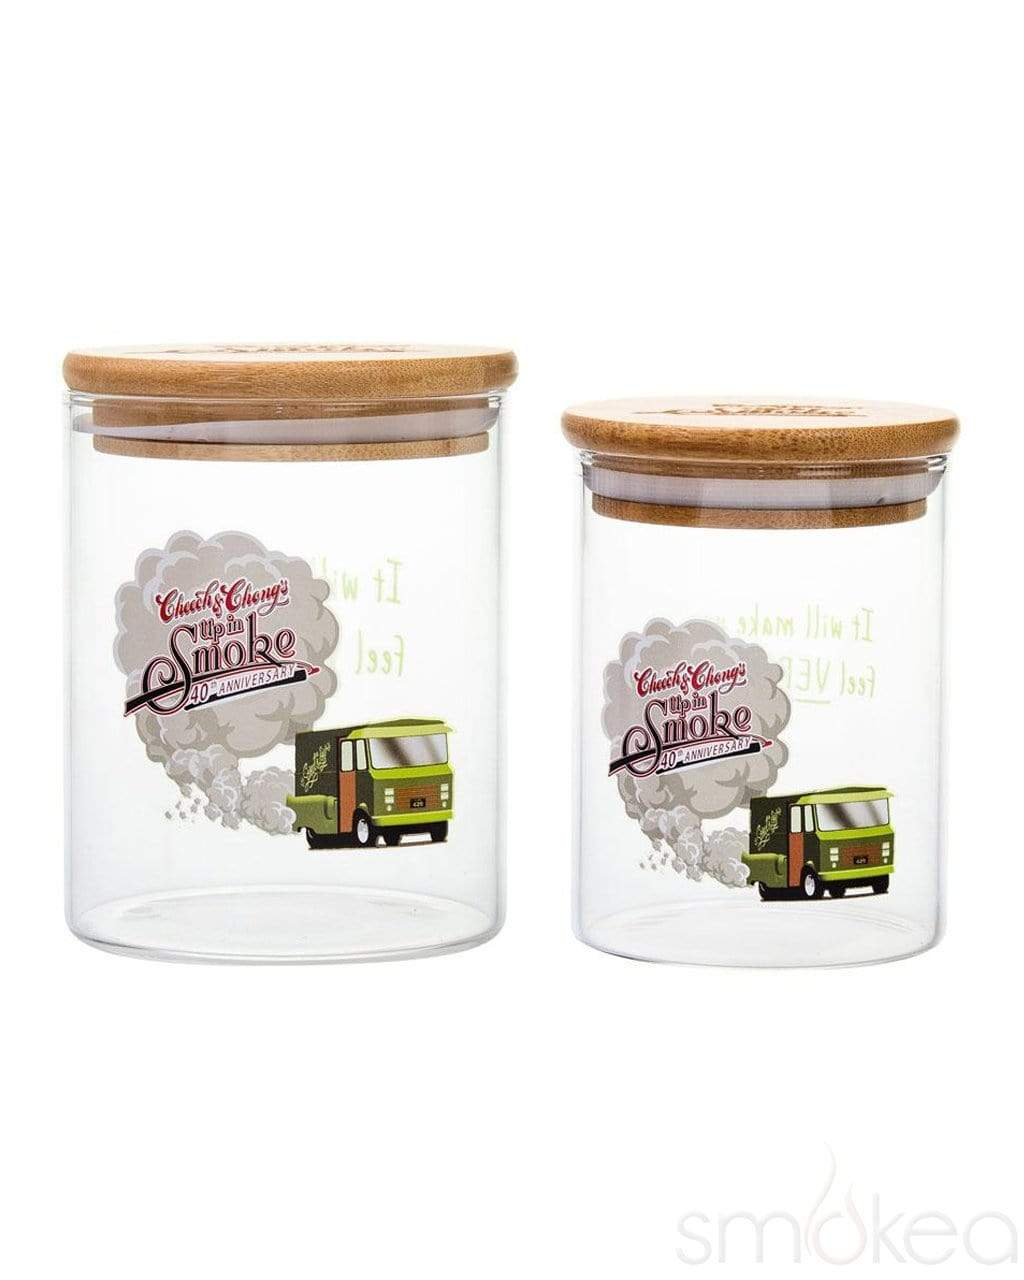 Cheech & Chong's Big Green Van Stash Jar